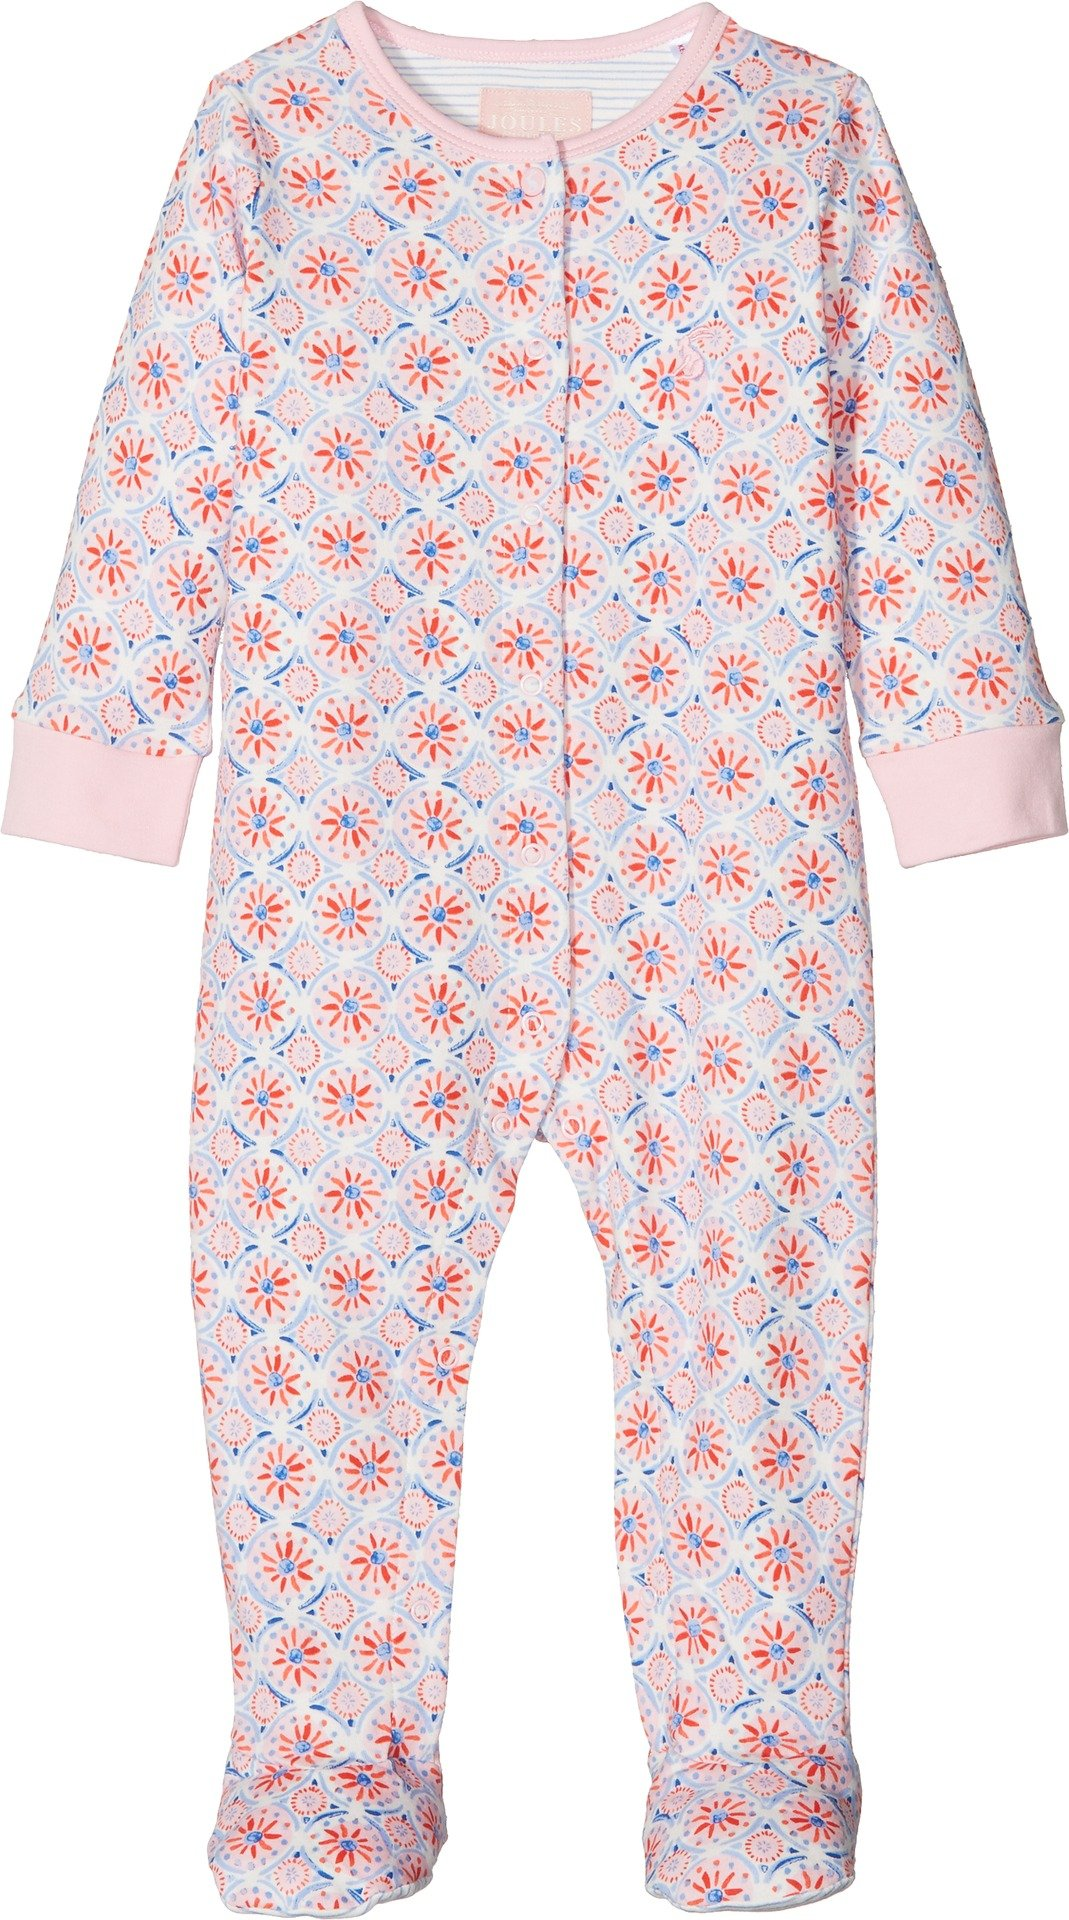 Joules Kids Baby Girl's All Over Printed Footie (Infant) Cream Summer Mosaic 6-9 Months